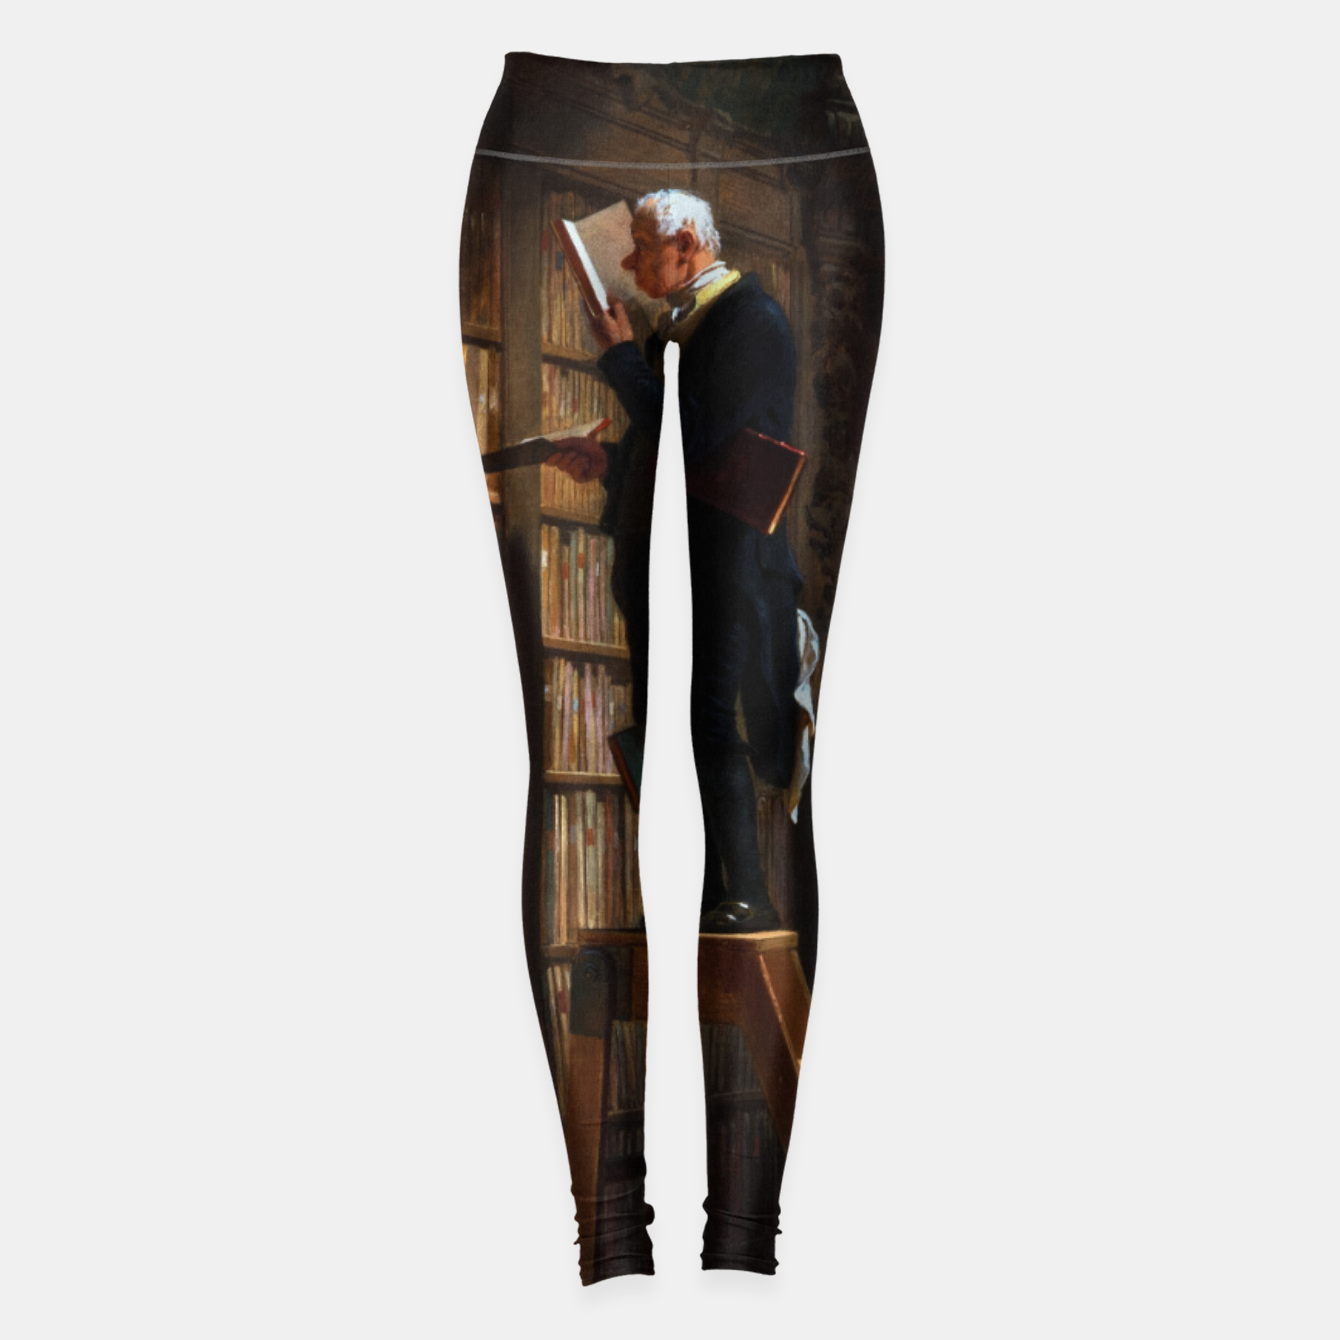 Image of The Bookworm by Carl Spitzweg Classical Art Old Masters Reproduction Leggings - Live Heroes